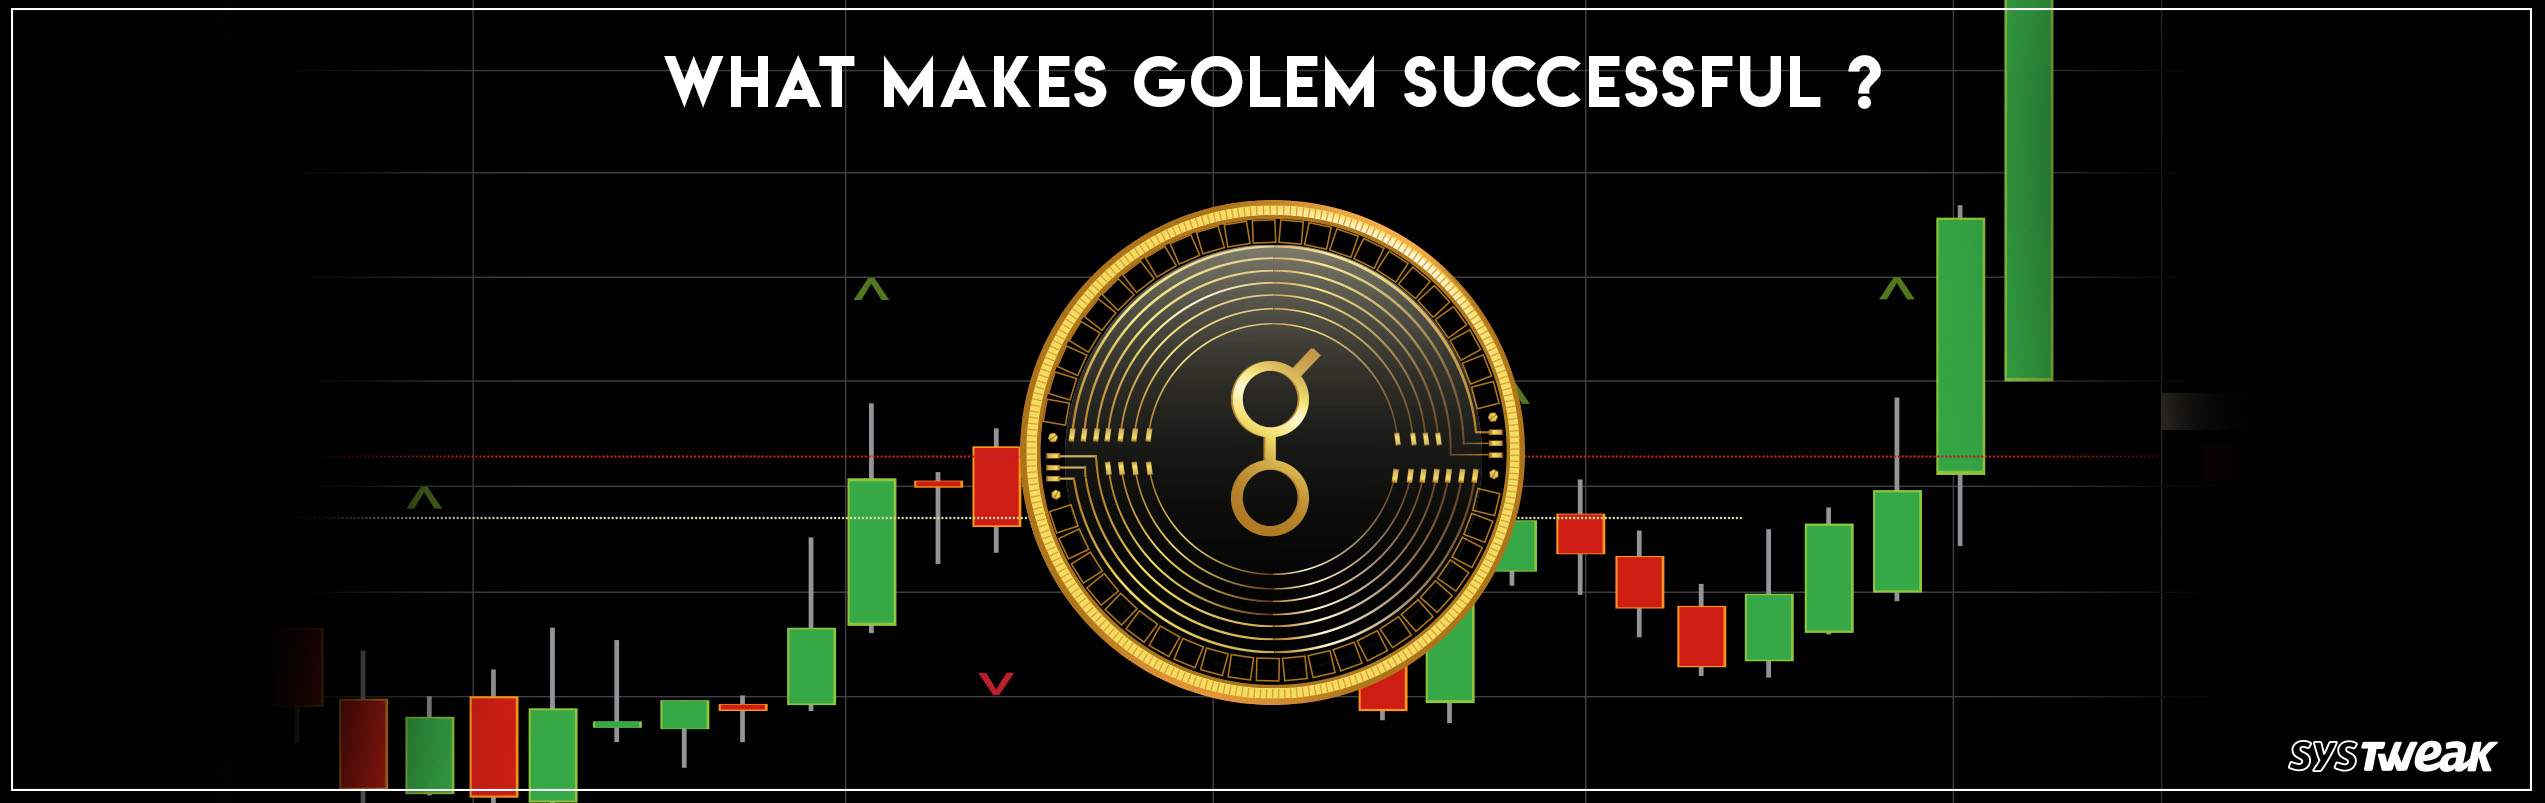 Reasons for Golem (GNT) Success